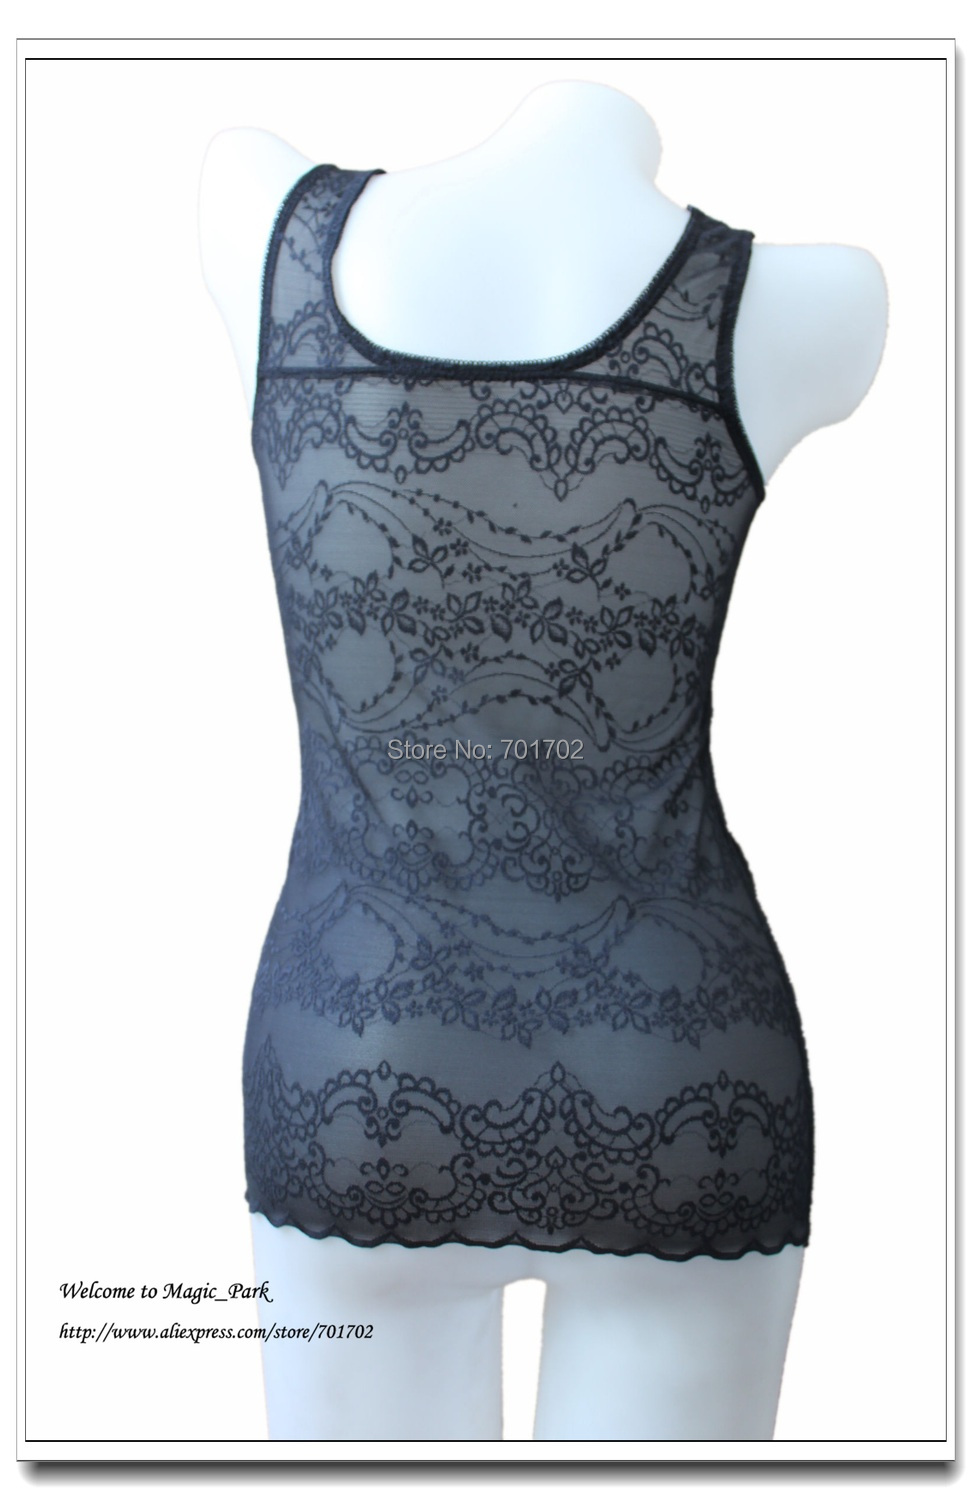 Sexy Lace Tanks Tops Camis Basic Floral Clothes Underwear TANK TOP Camisole Underbust Black Tight Tops Free Shipping (4).jpg